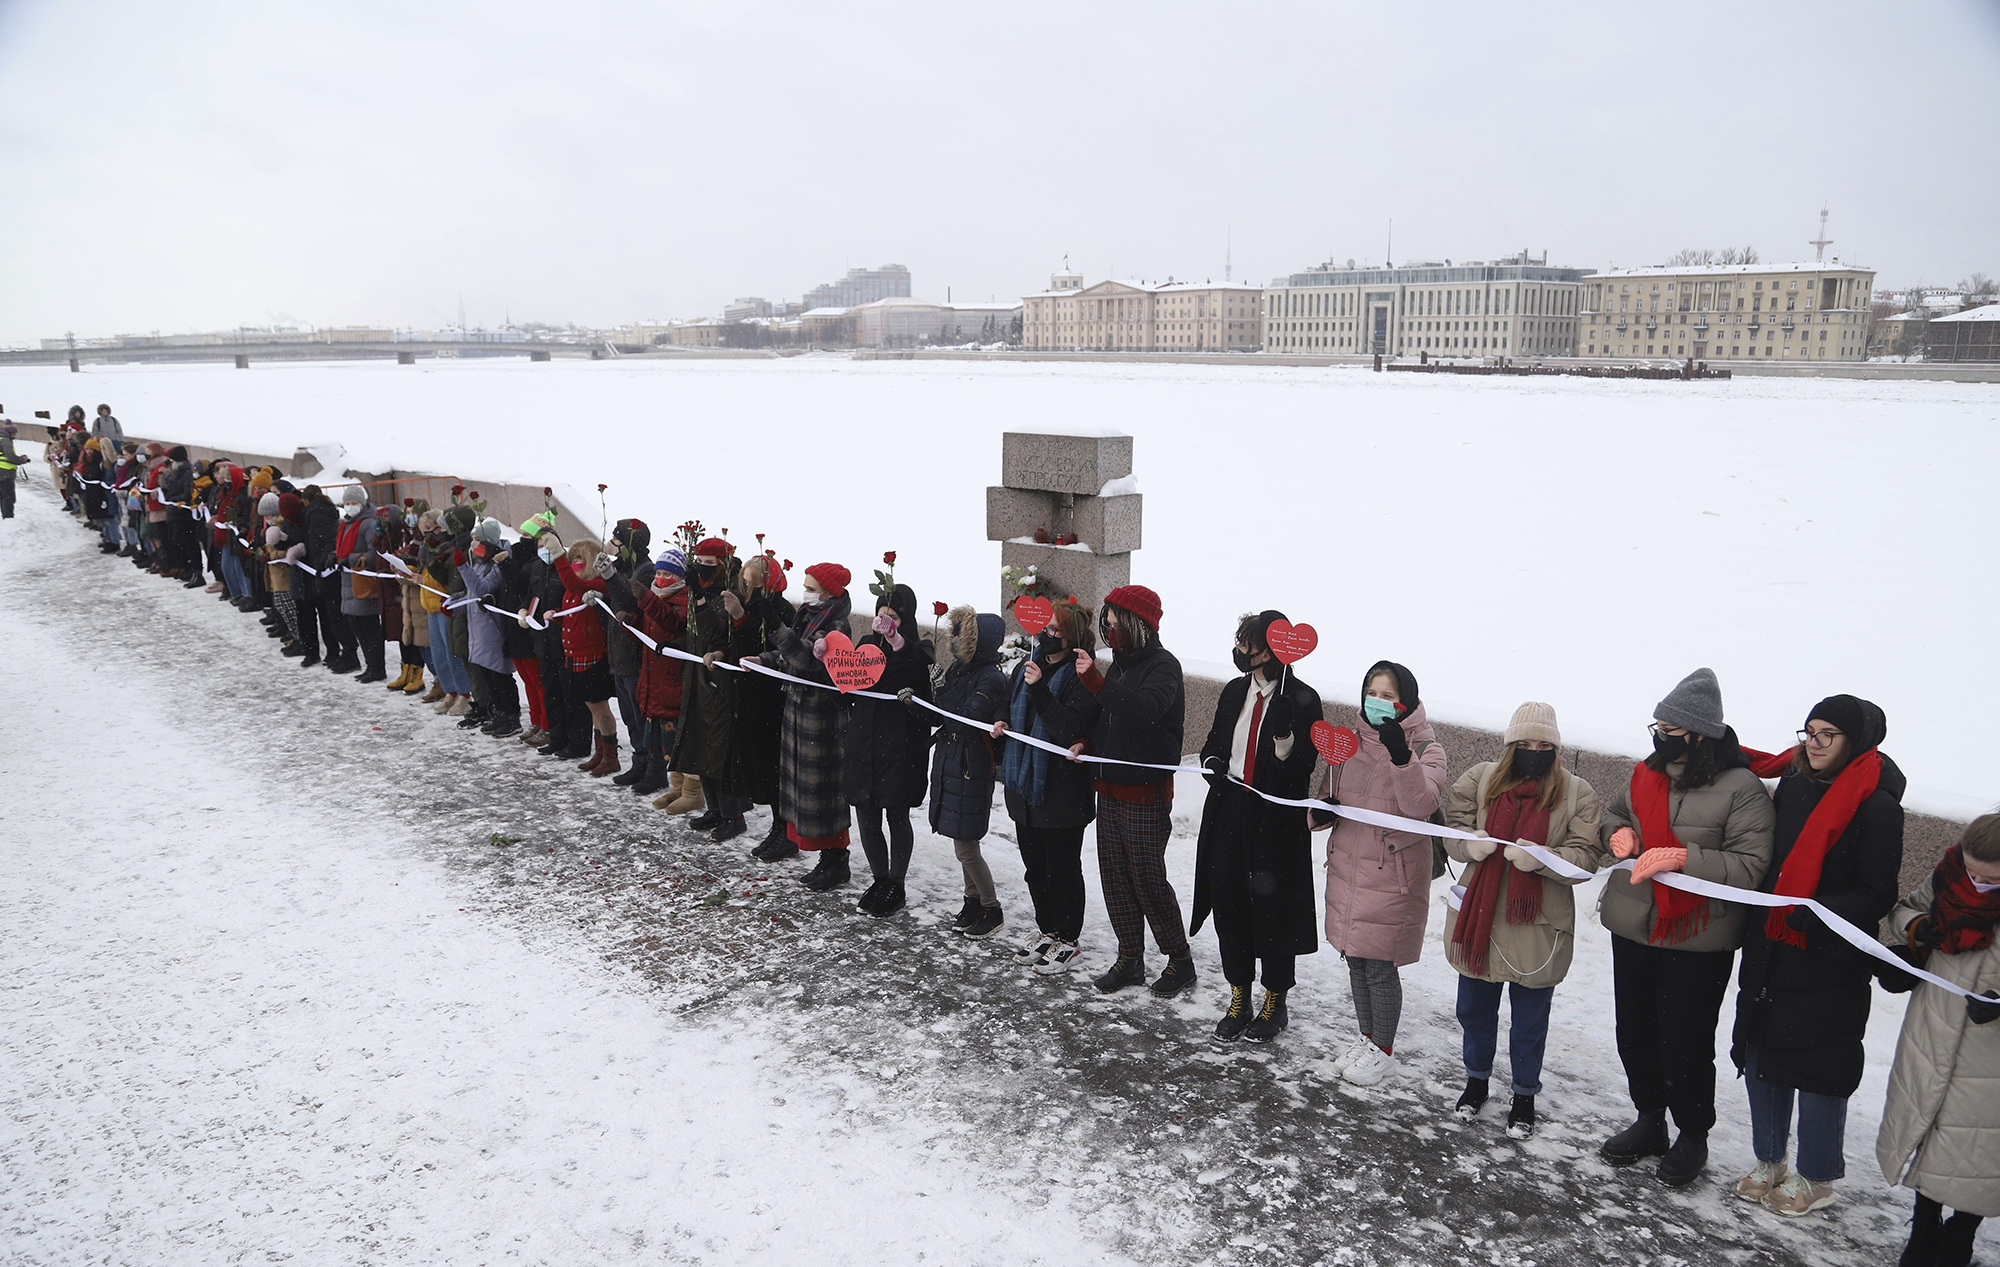 Women, some of them wearing face masks to protect against coronavirus, attend a rally in support of jailed opposition leader Alexei Navalny and his wife Yulia Navalnaya, in St. Petersburg, Russia, Sunday, Feb. 14, 2021. Participants formed a human chain in a show of solidarity with those who were detained during protests calling for the release of jailed Russian opposition leader Alexei Navalny, and the Kremlin has accused the West of meddling in Russia's affairs by denouncing the crackdown on protests. (AP Photo/Ivan Petrov)